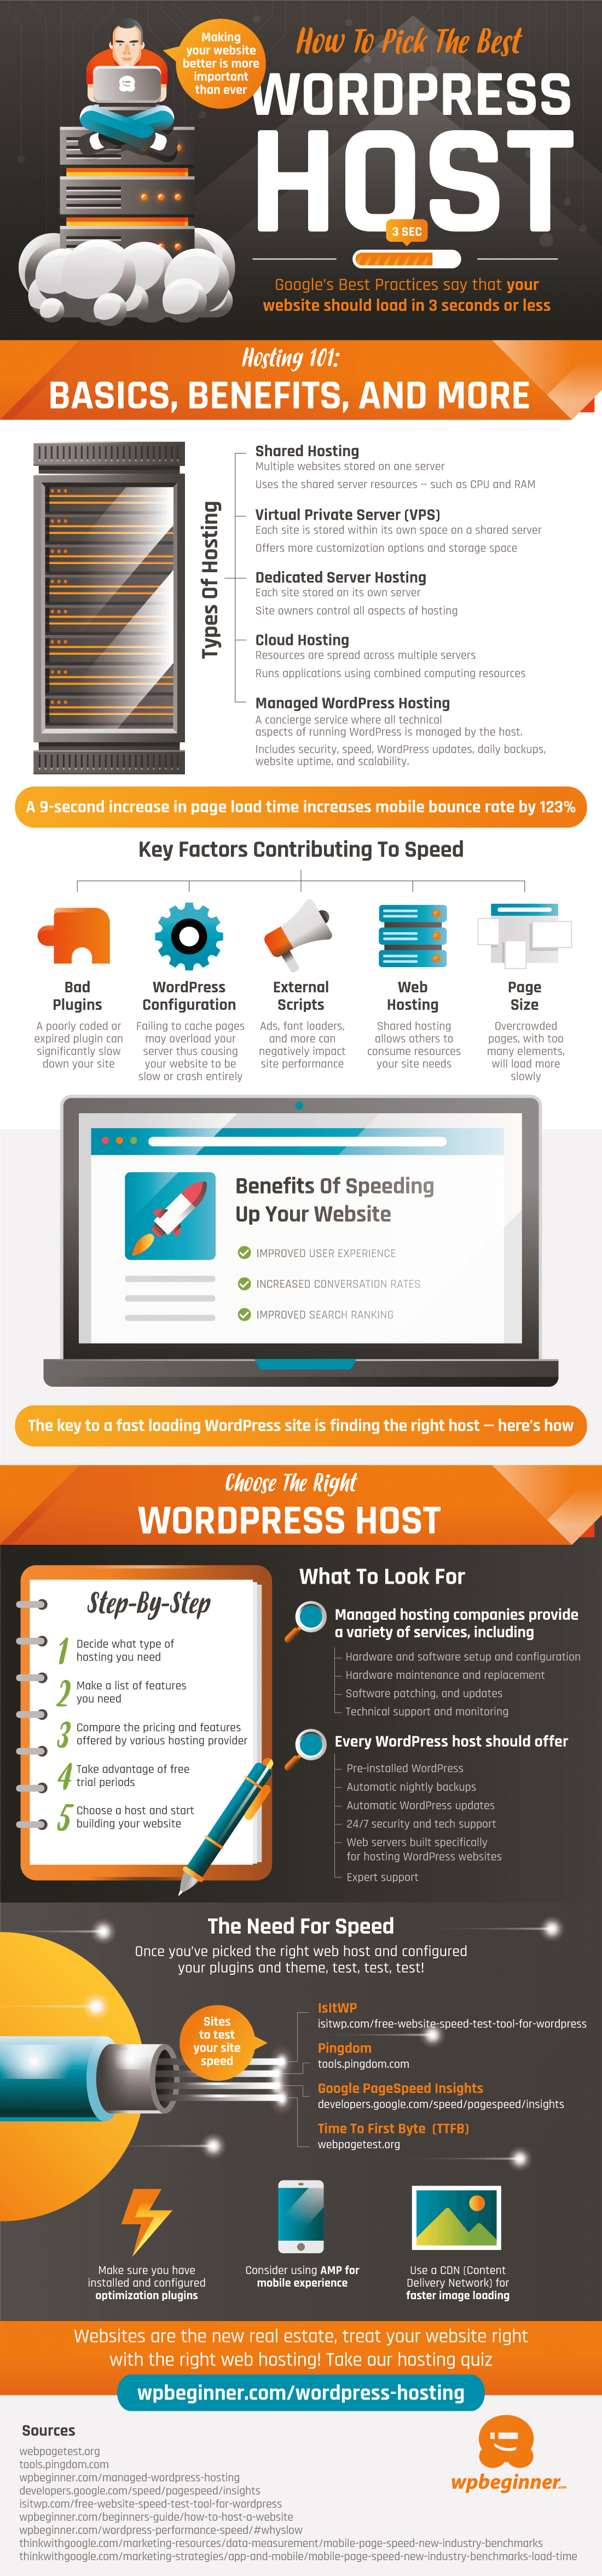 How to Pick the Best WordPress Host by WPBeginner